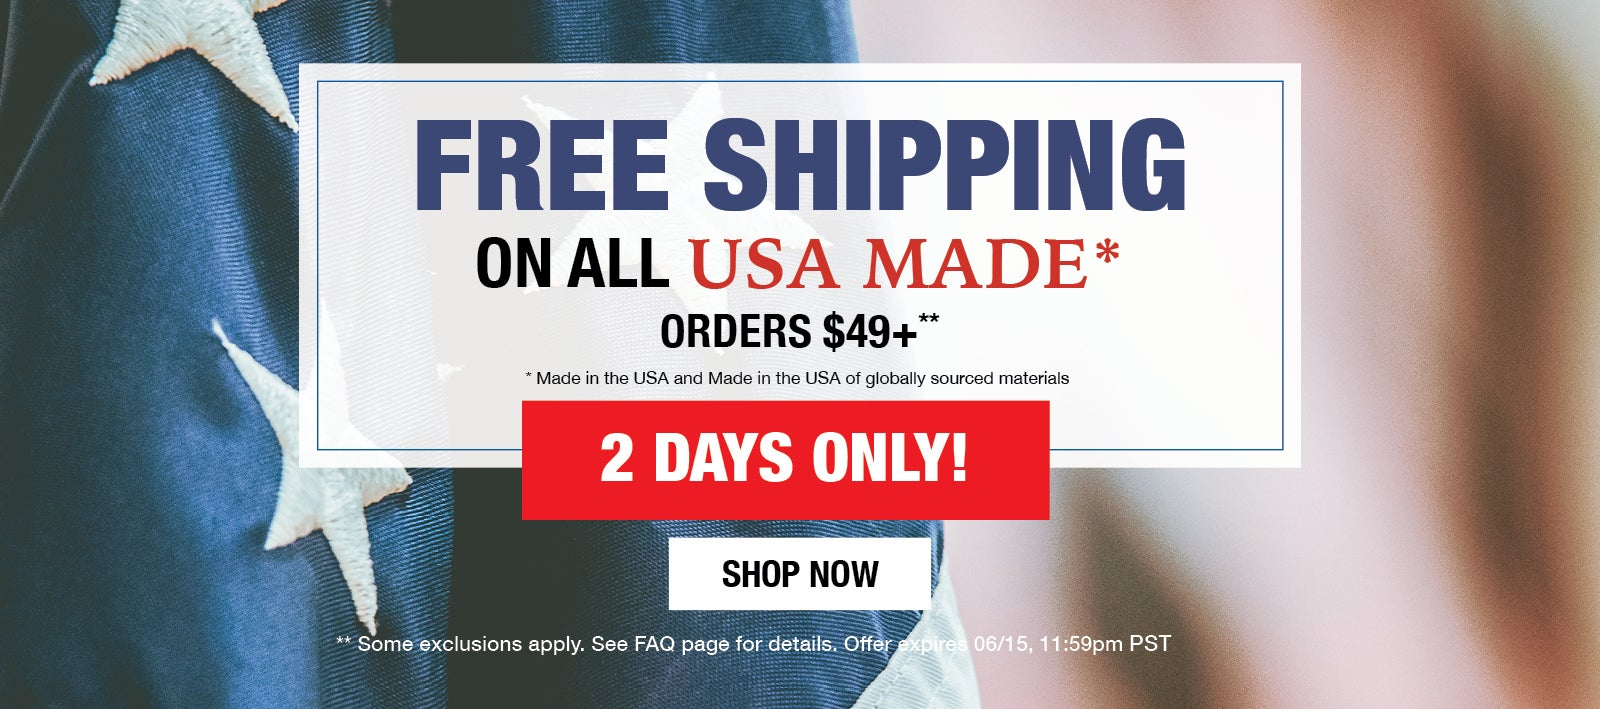 Free Shipping on USA Made Orders $49+